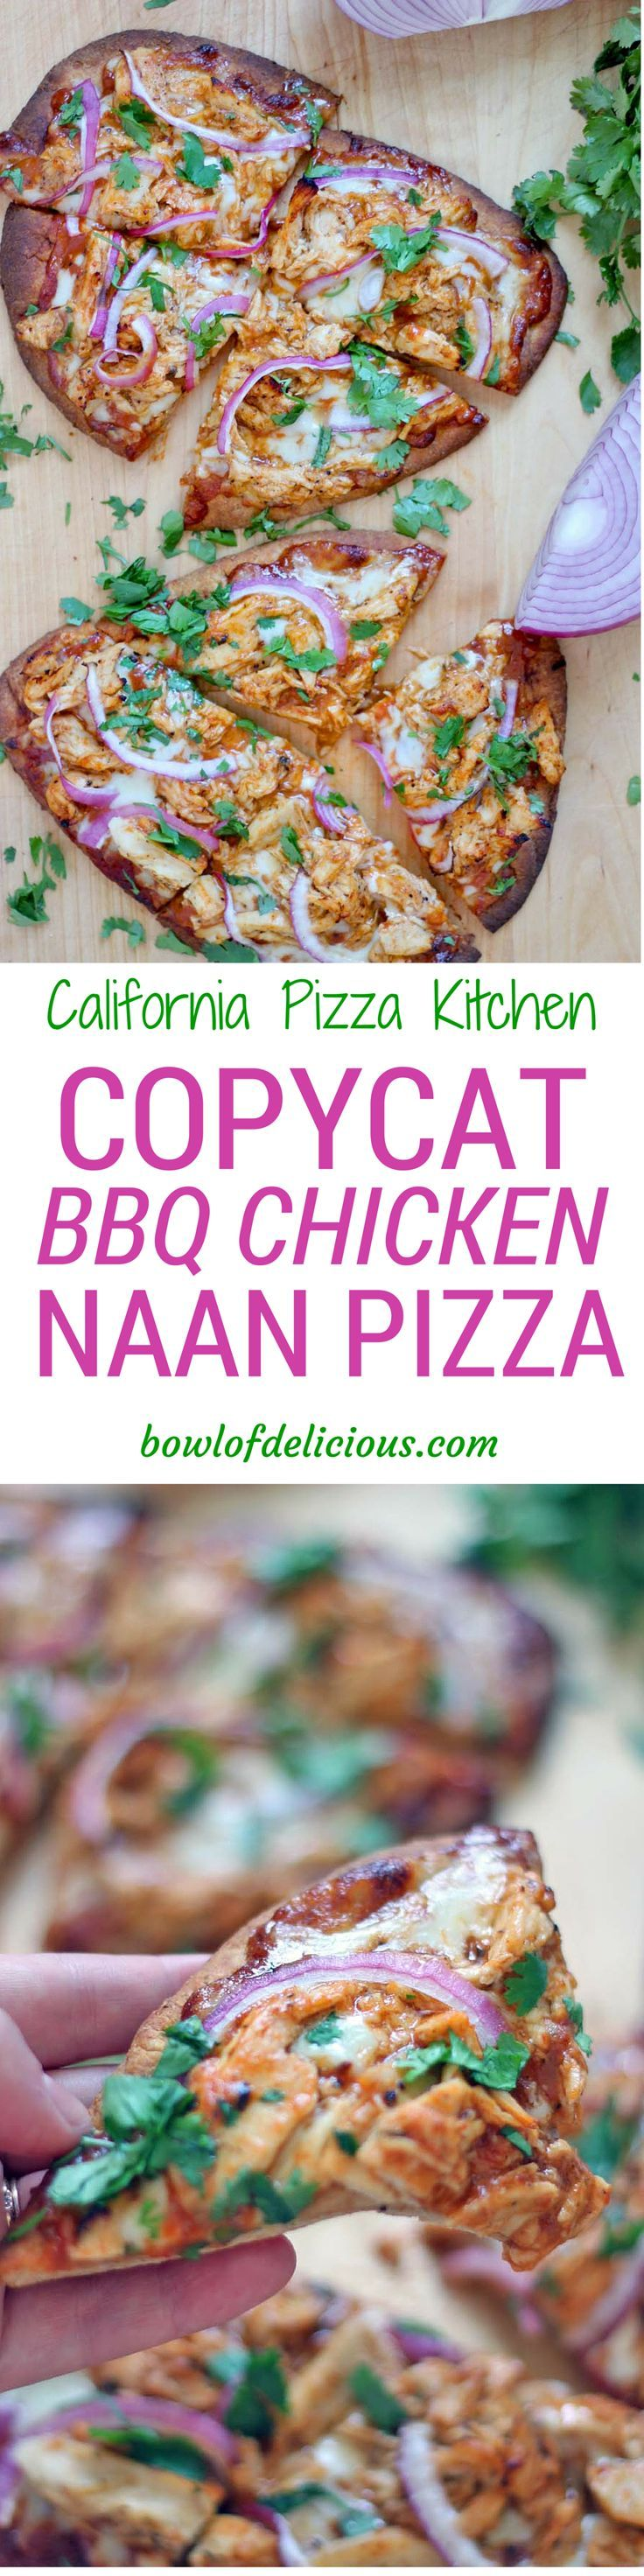 This homemade BBQ Chicken Naan Pizza is healthier than CPK's recipe, more delicious, and super quick and easy to make! This will become one of your favorite recipes.